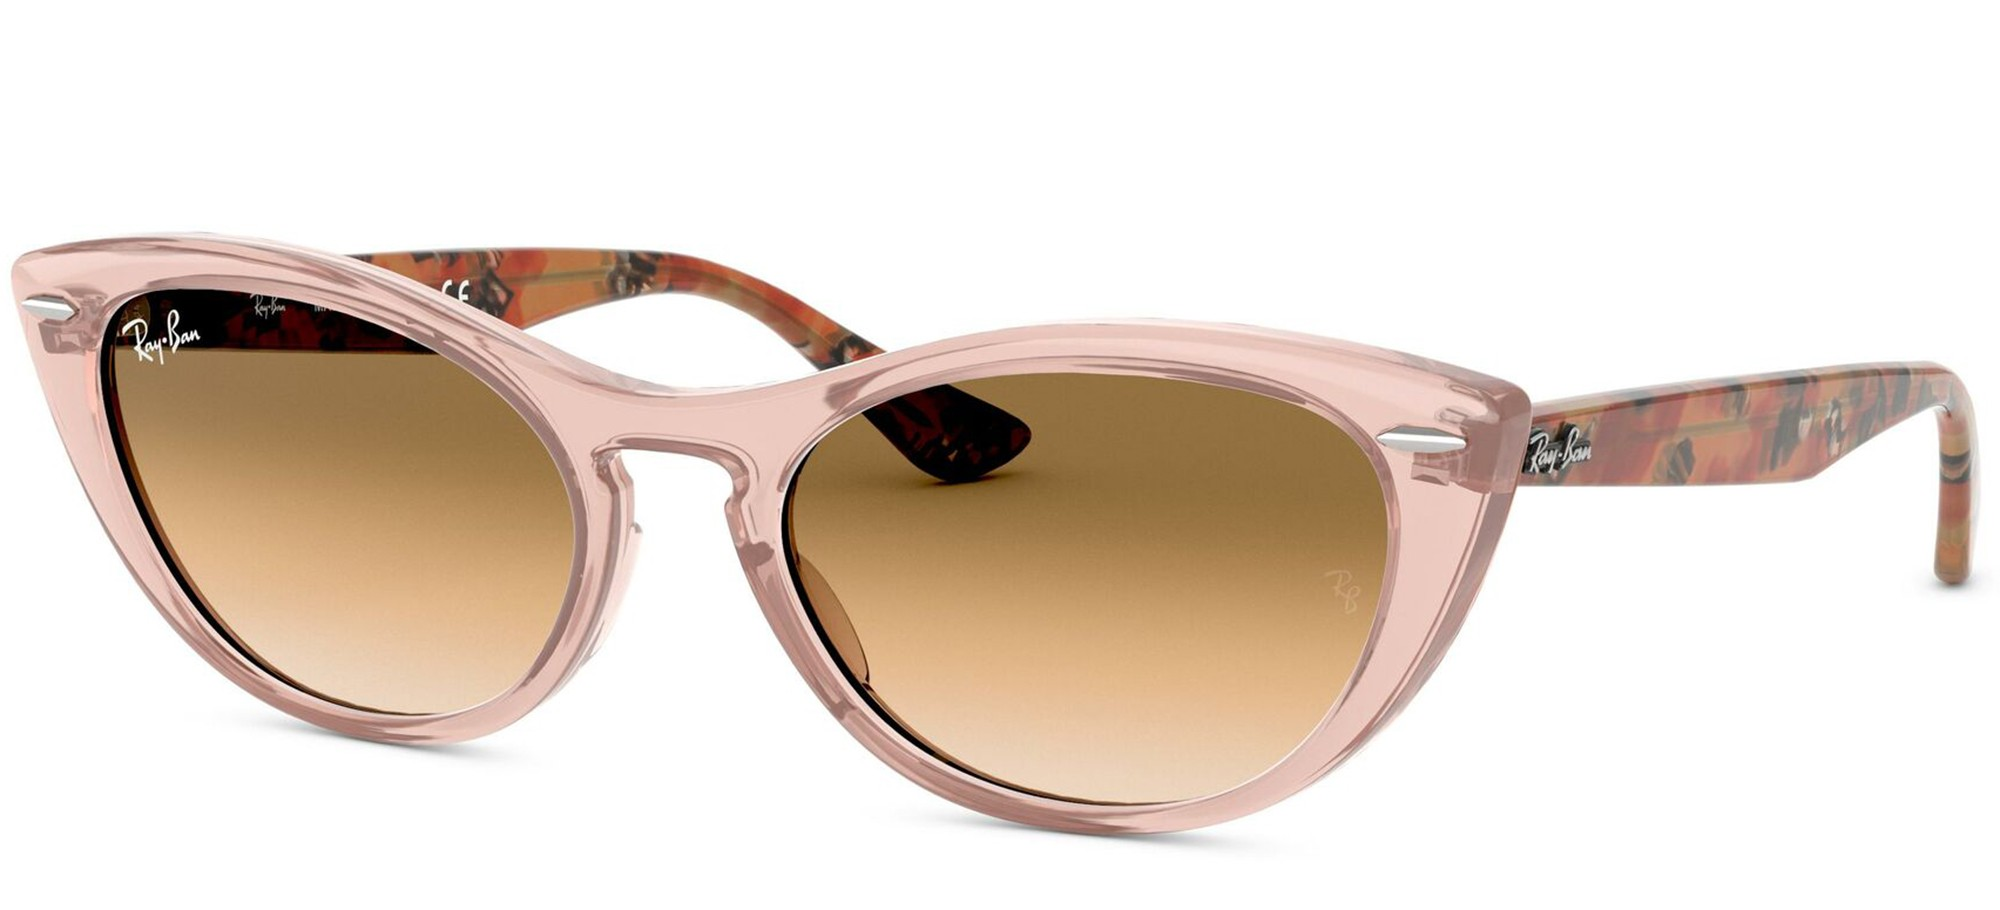 Ray-Ban sunglasses NINA RB 4314N